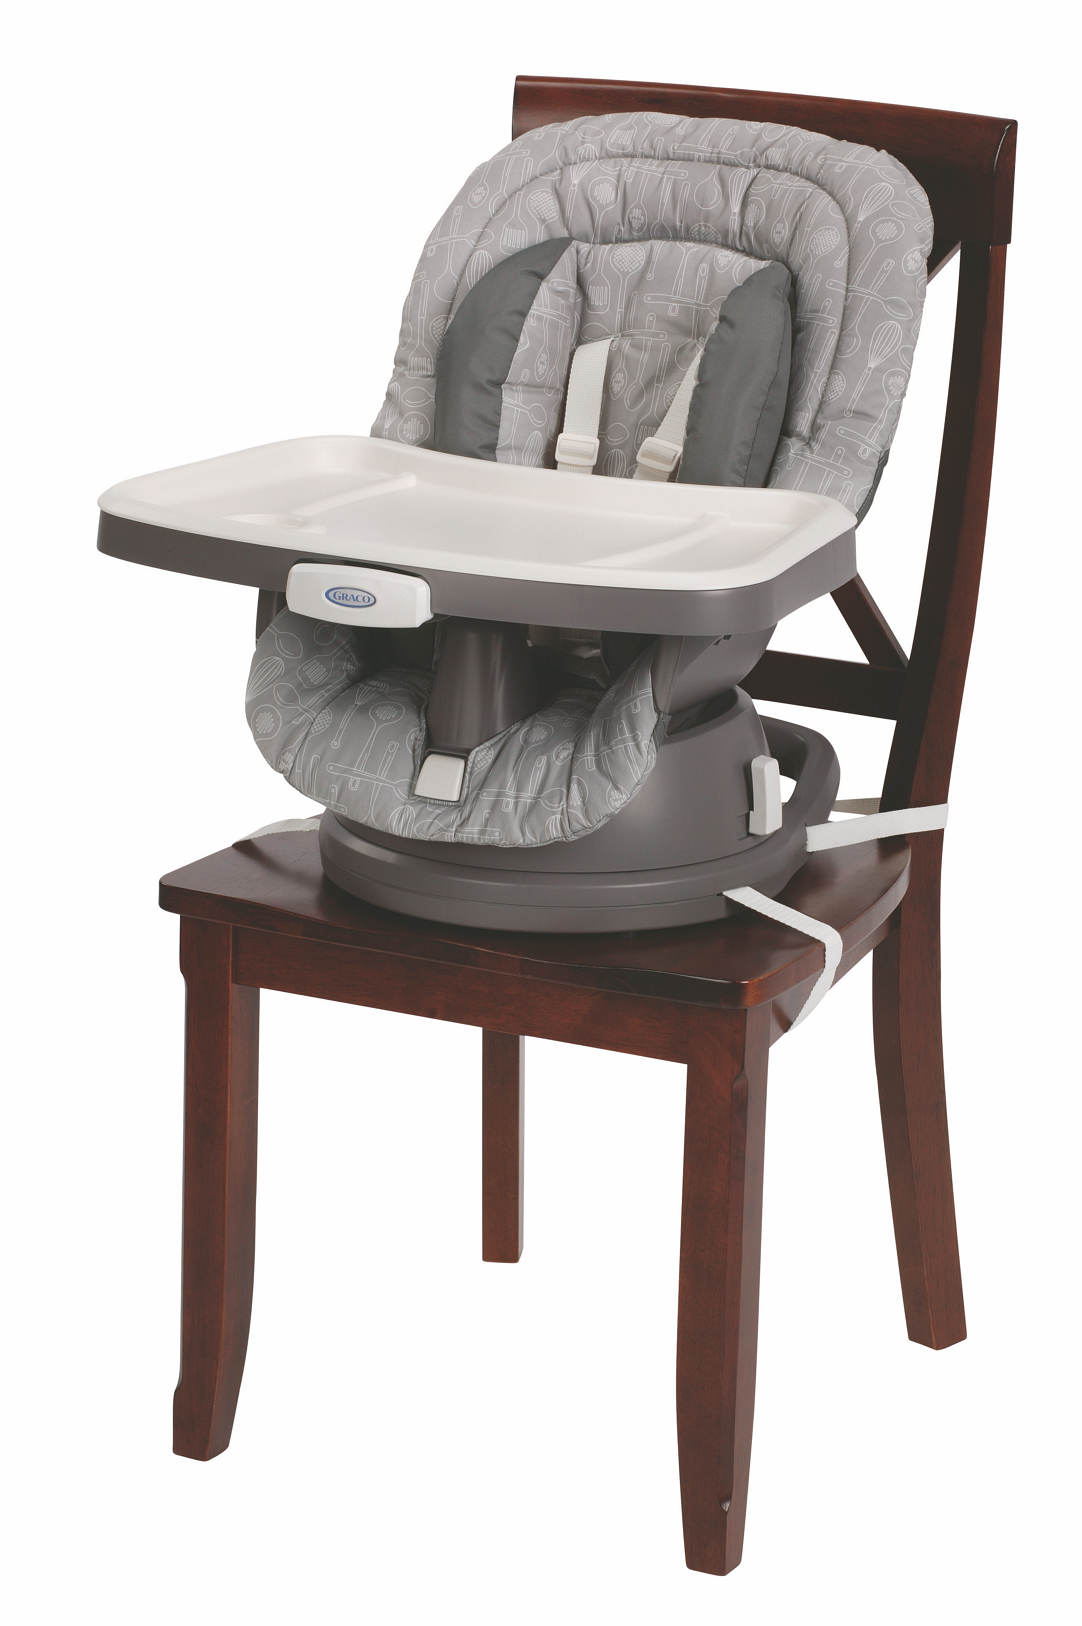 Amazon Com Graco Swivi Seat 3 In 1 Booster High Chair